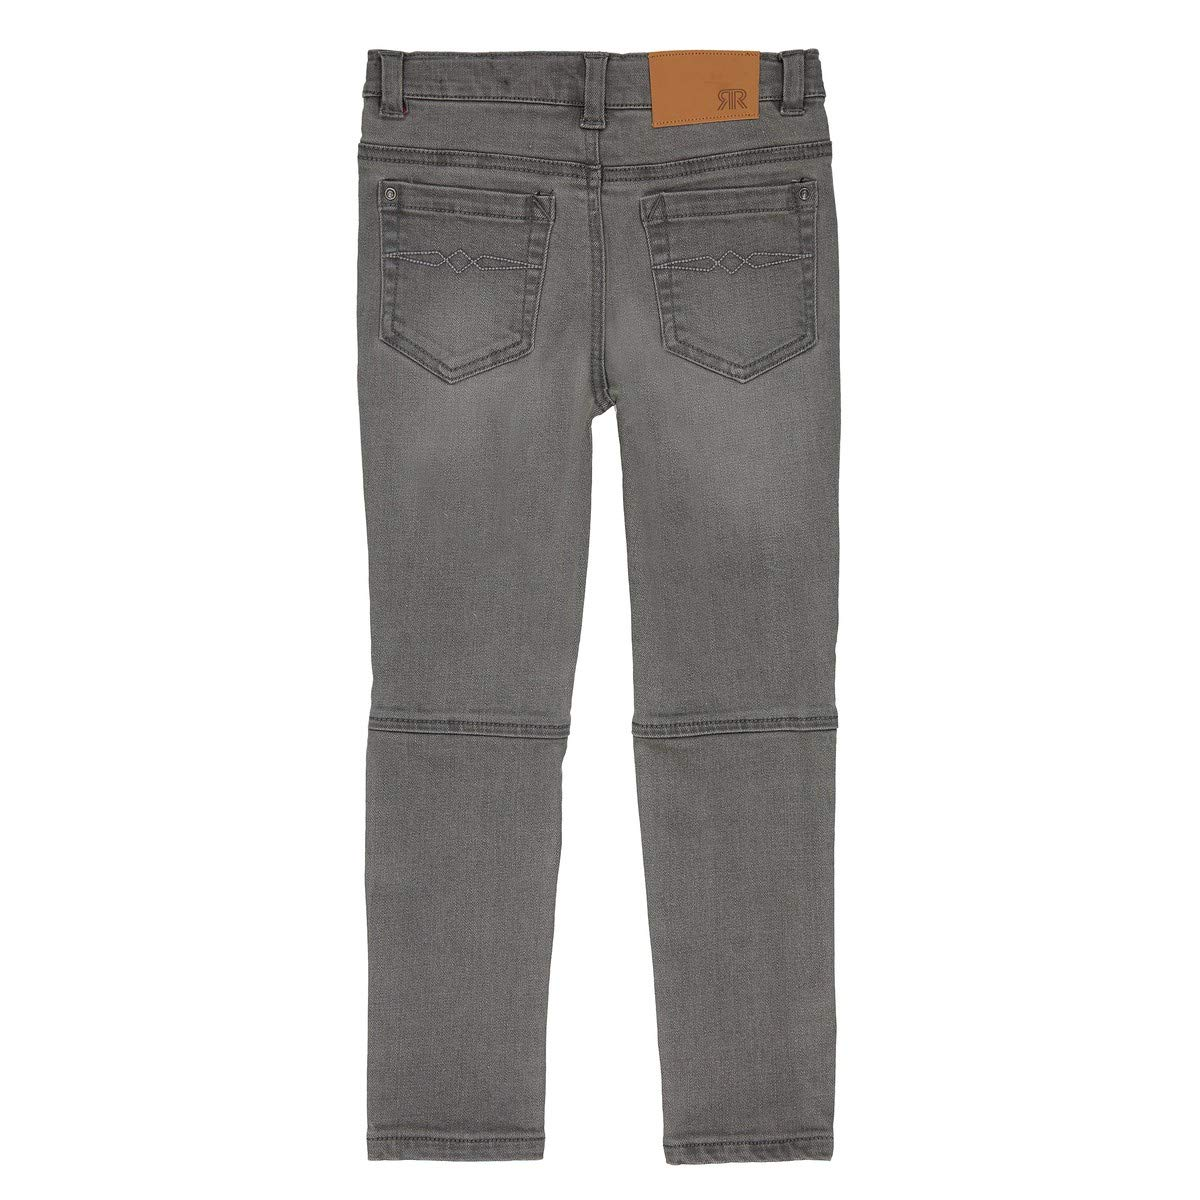 La Redoute Collections Big Boys Super Tough Slim Fit Jeans 3-12 Years